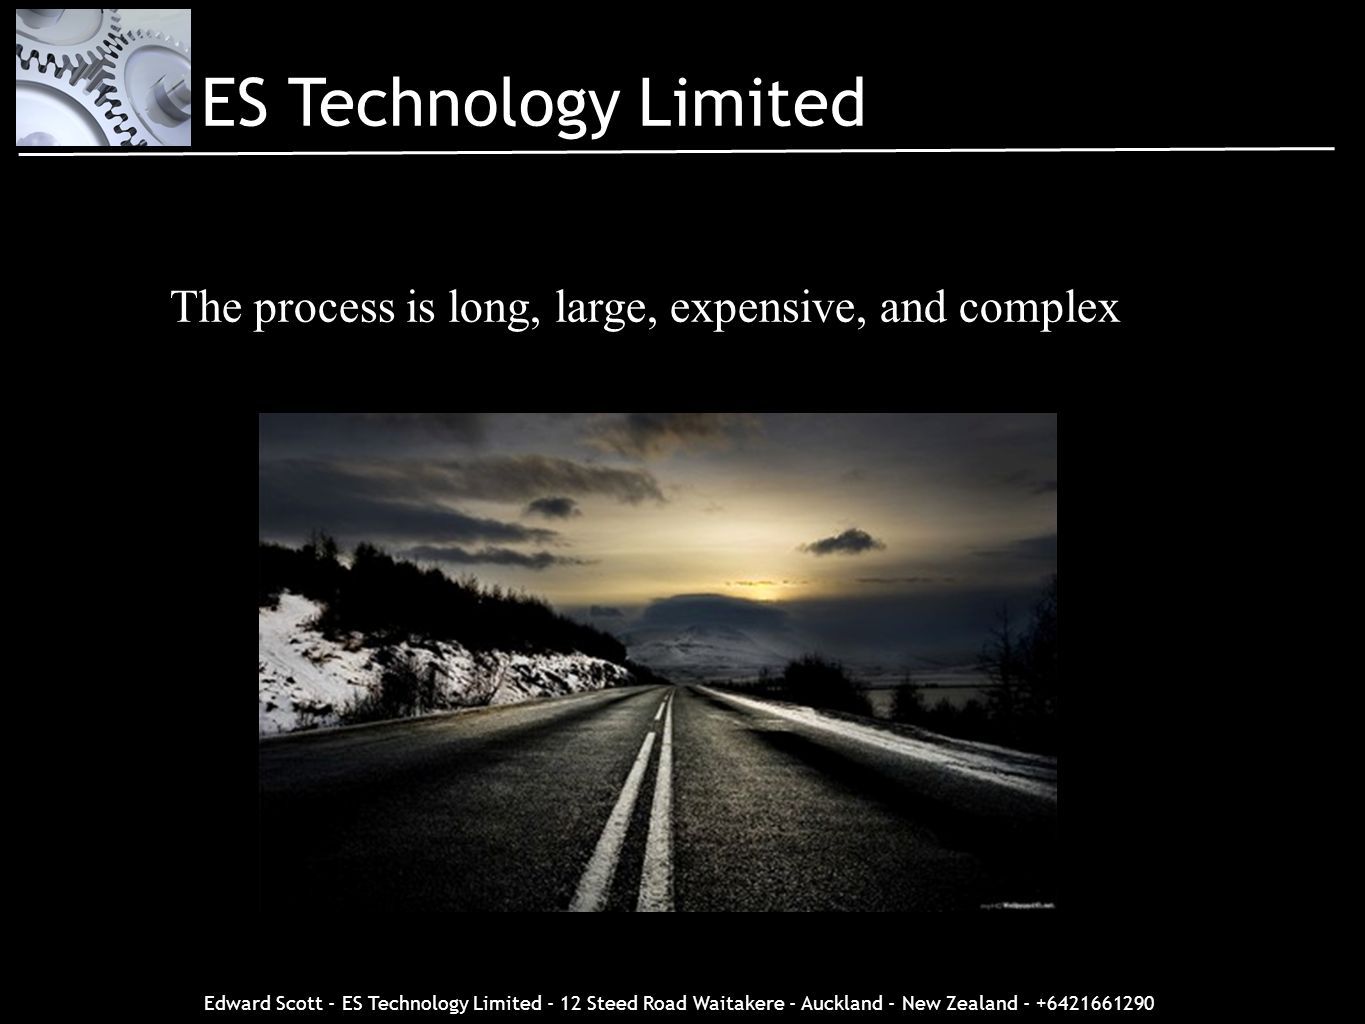 ES Technology Limited The process is long, large, expensive, and complex. The process. The process is long, large, expensive, and complex.